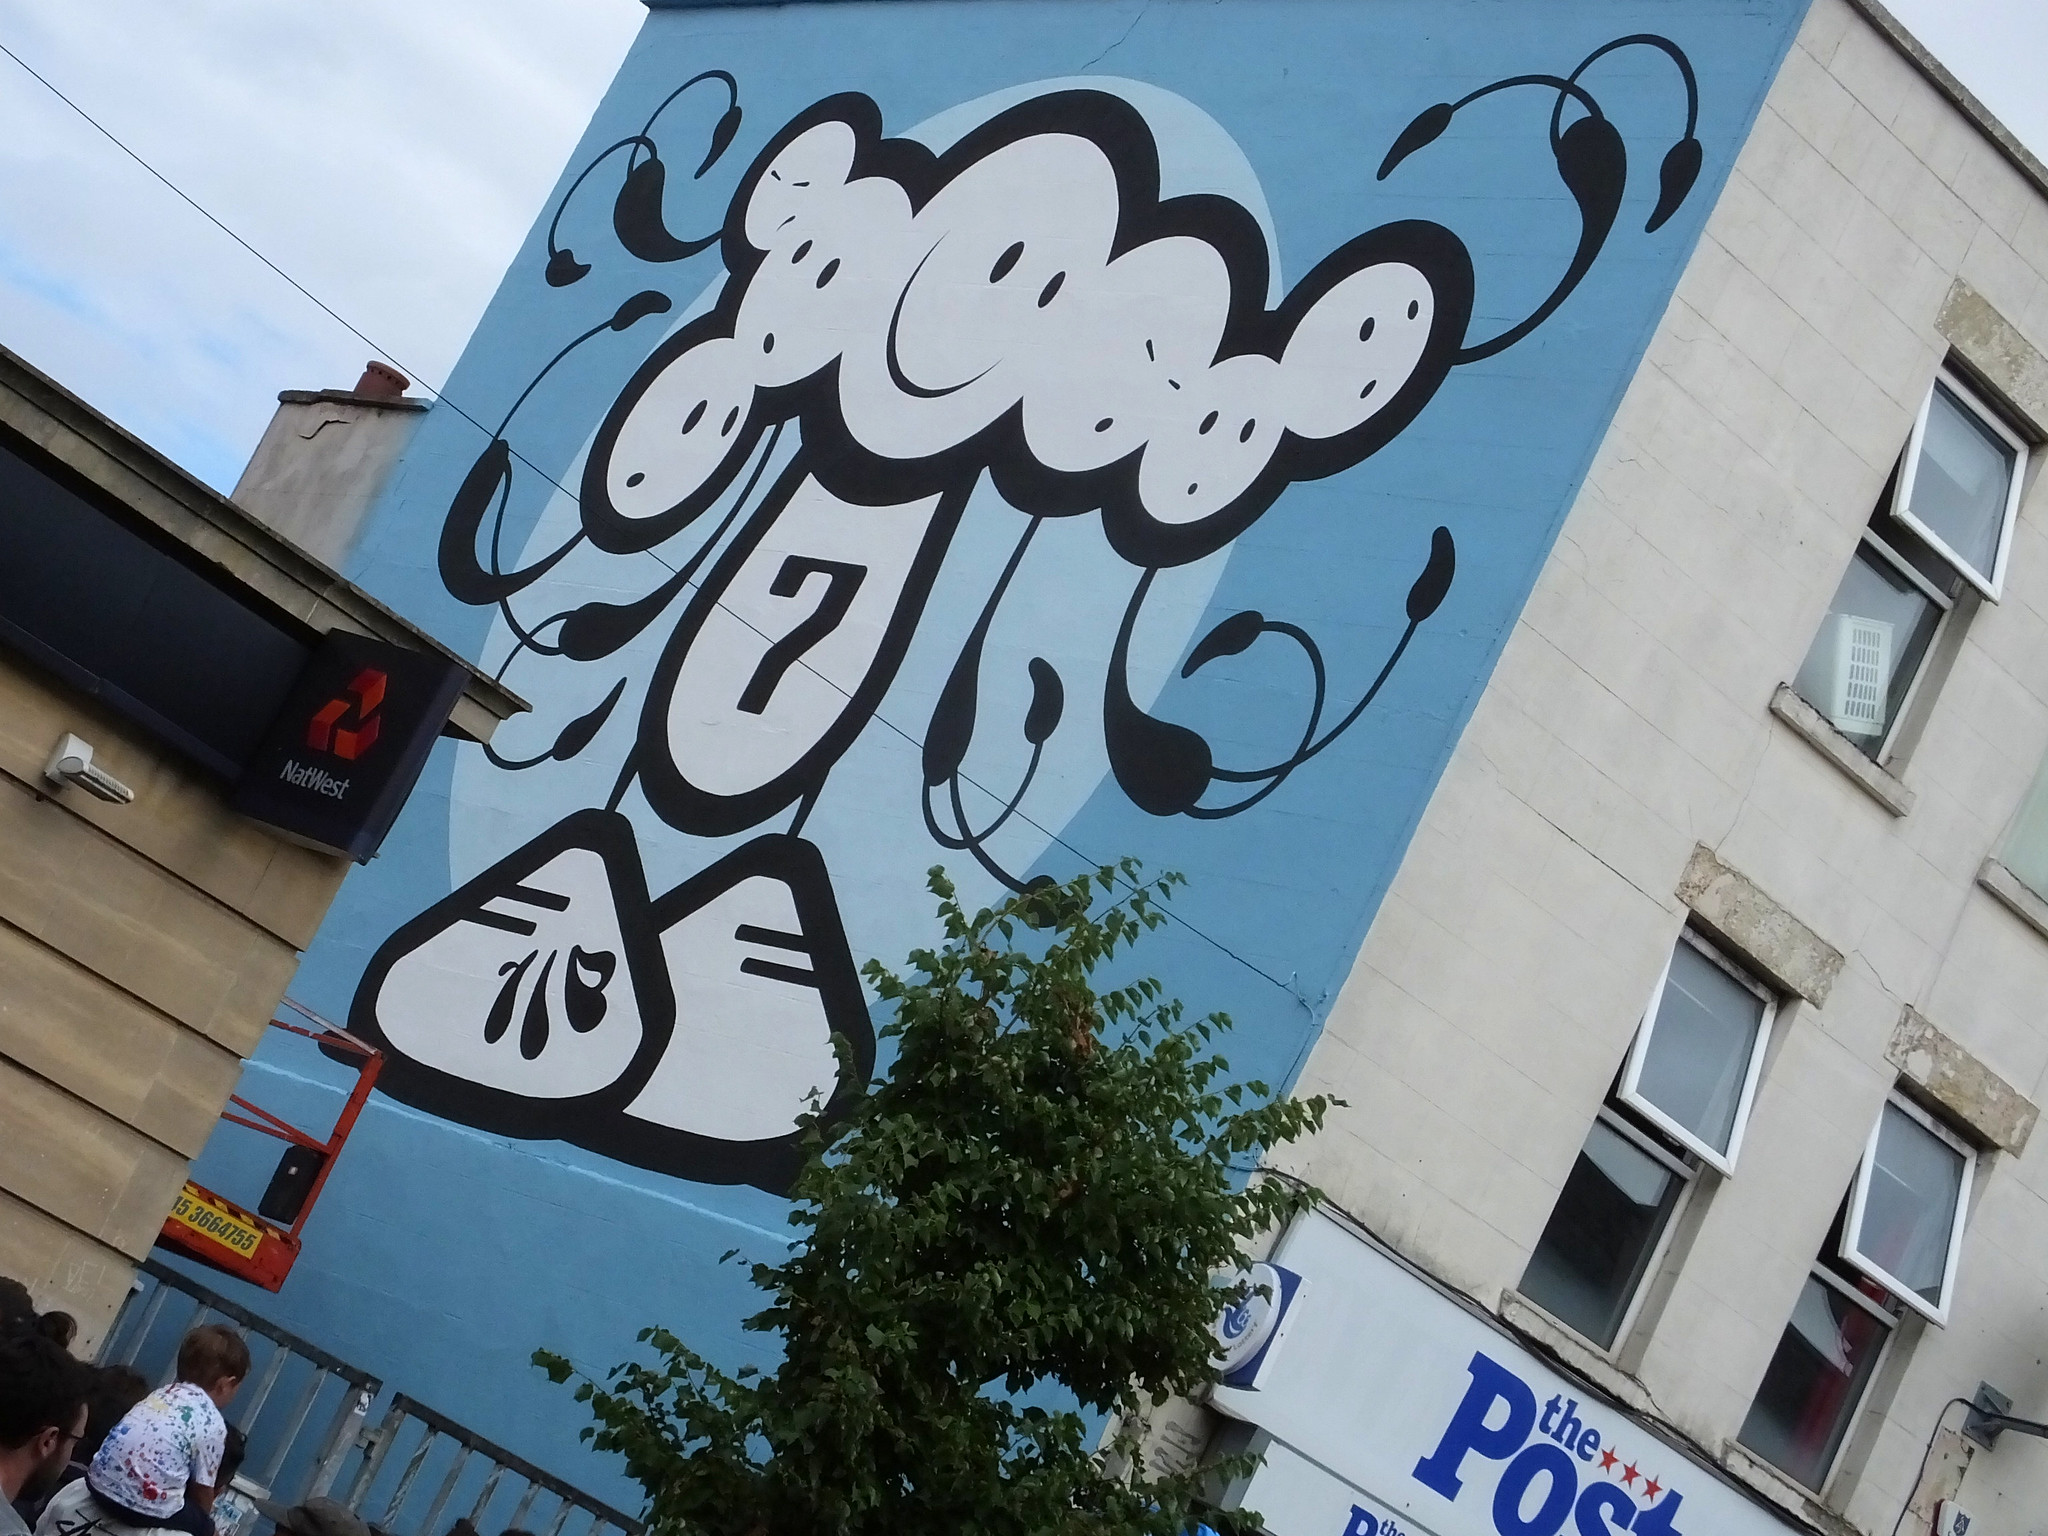 Upfest: The London police